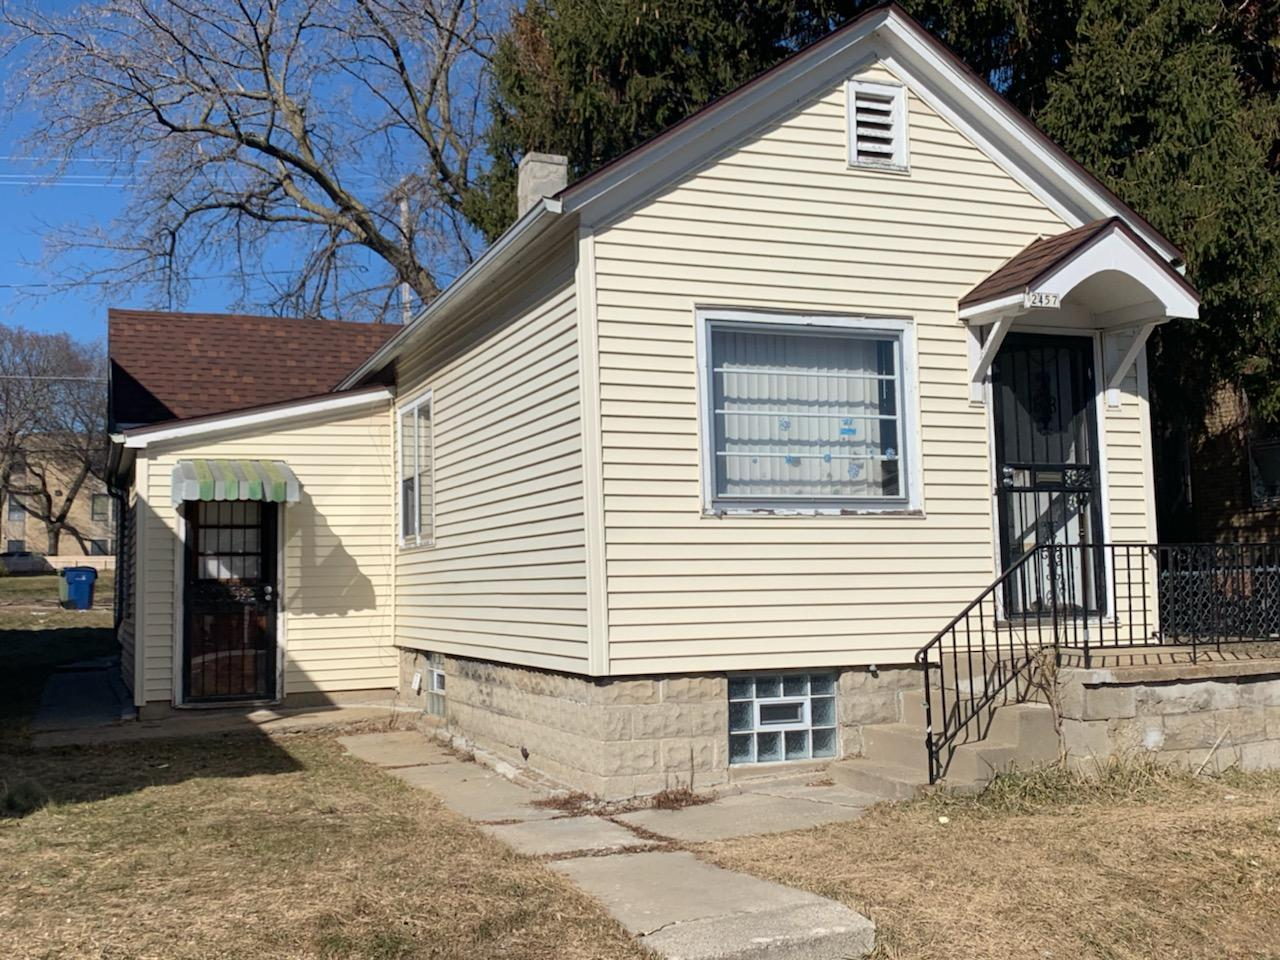 2457 Holton St, Milwaukee, Wisconsin 53212, 2 Bedrooms Bedrooms, 5 Rooms Rooms,1 BathroomBathrooms,Single-Family,For Sale,Holton St,1629239